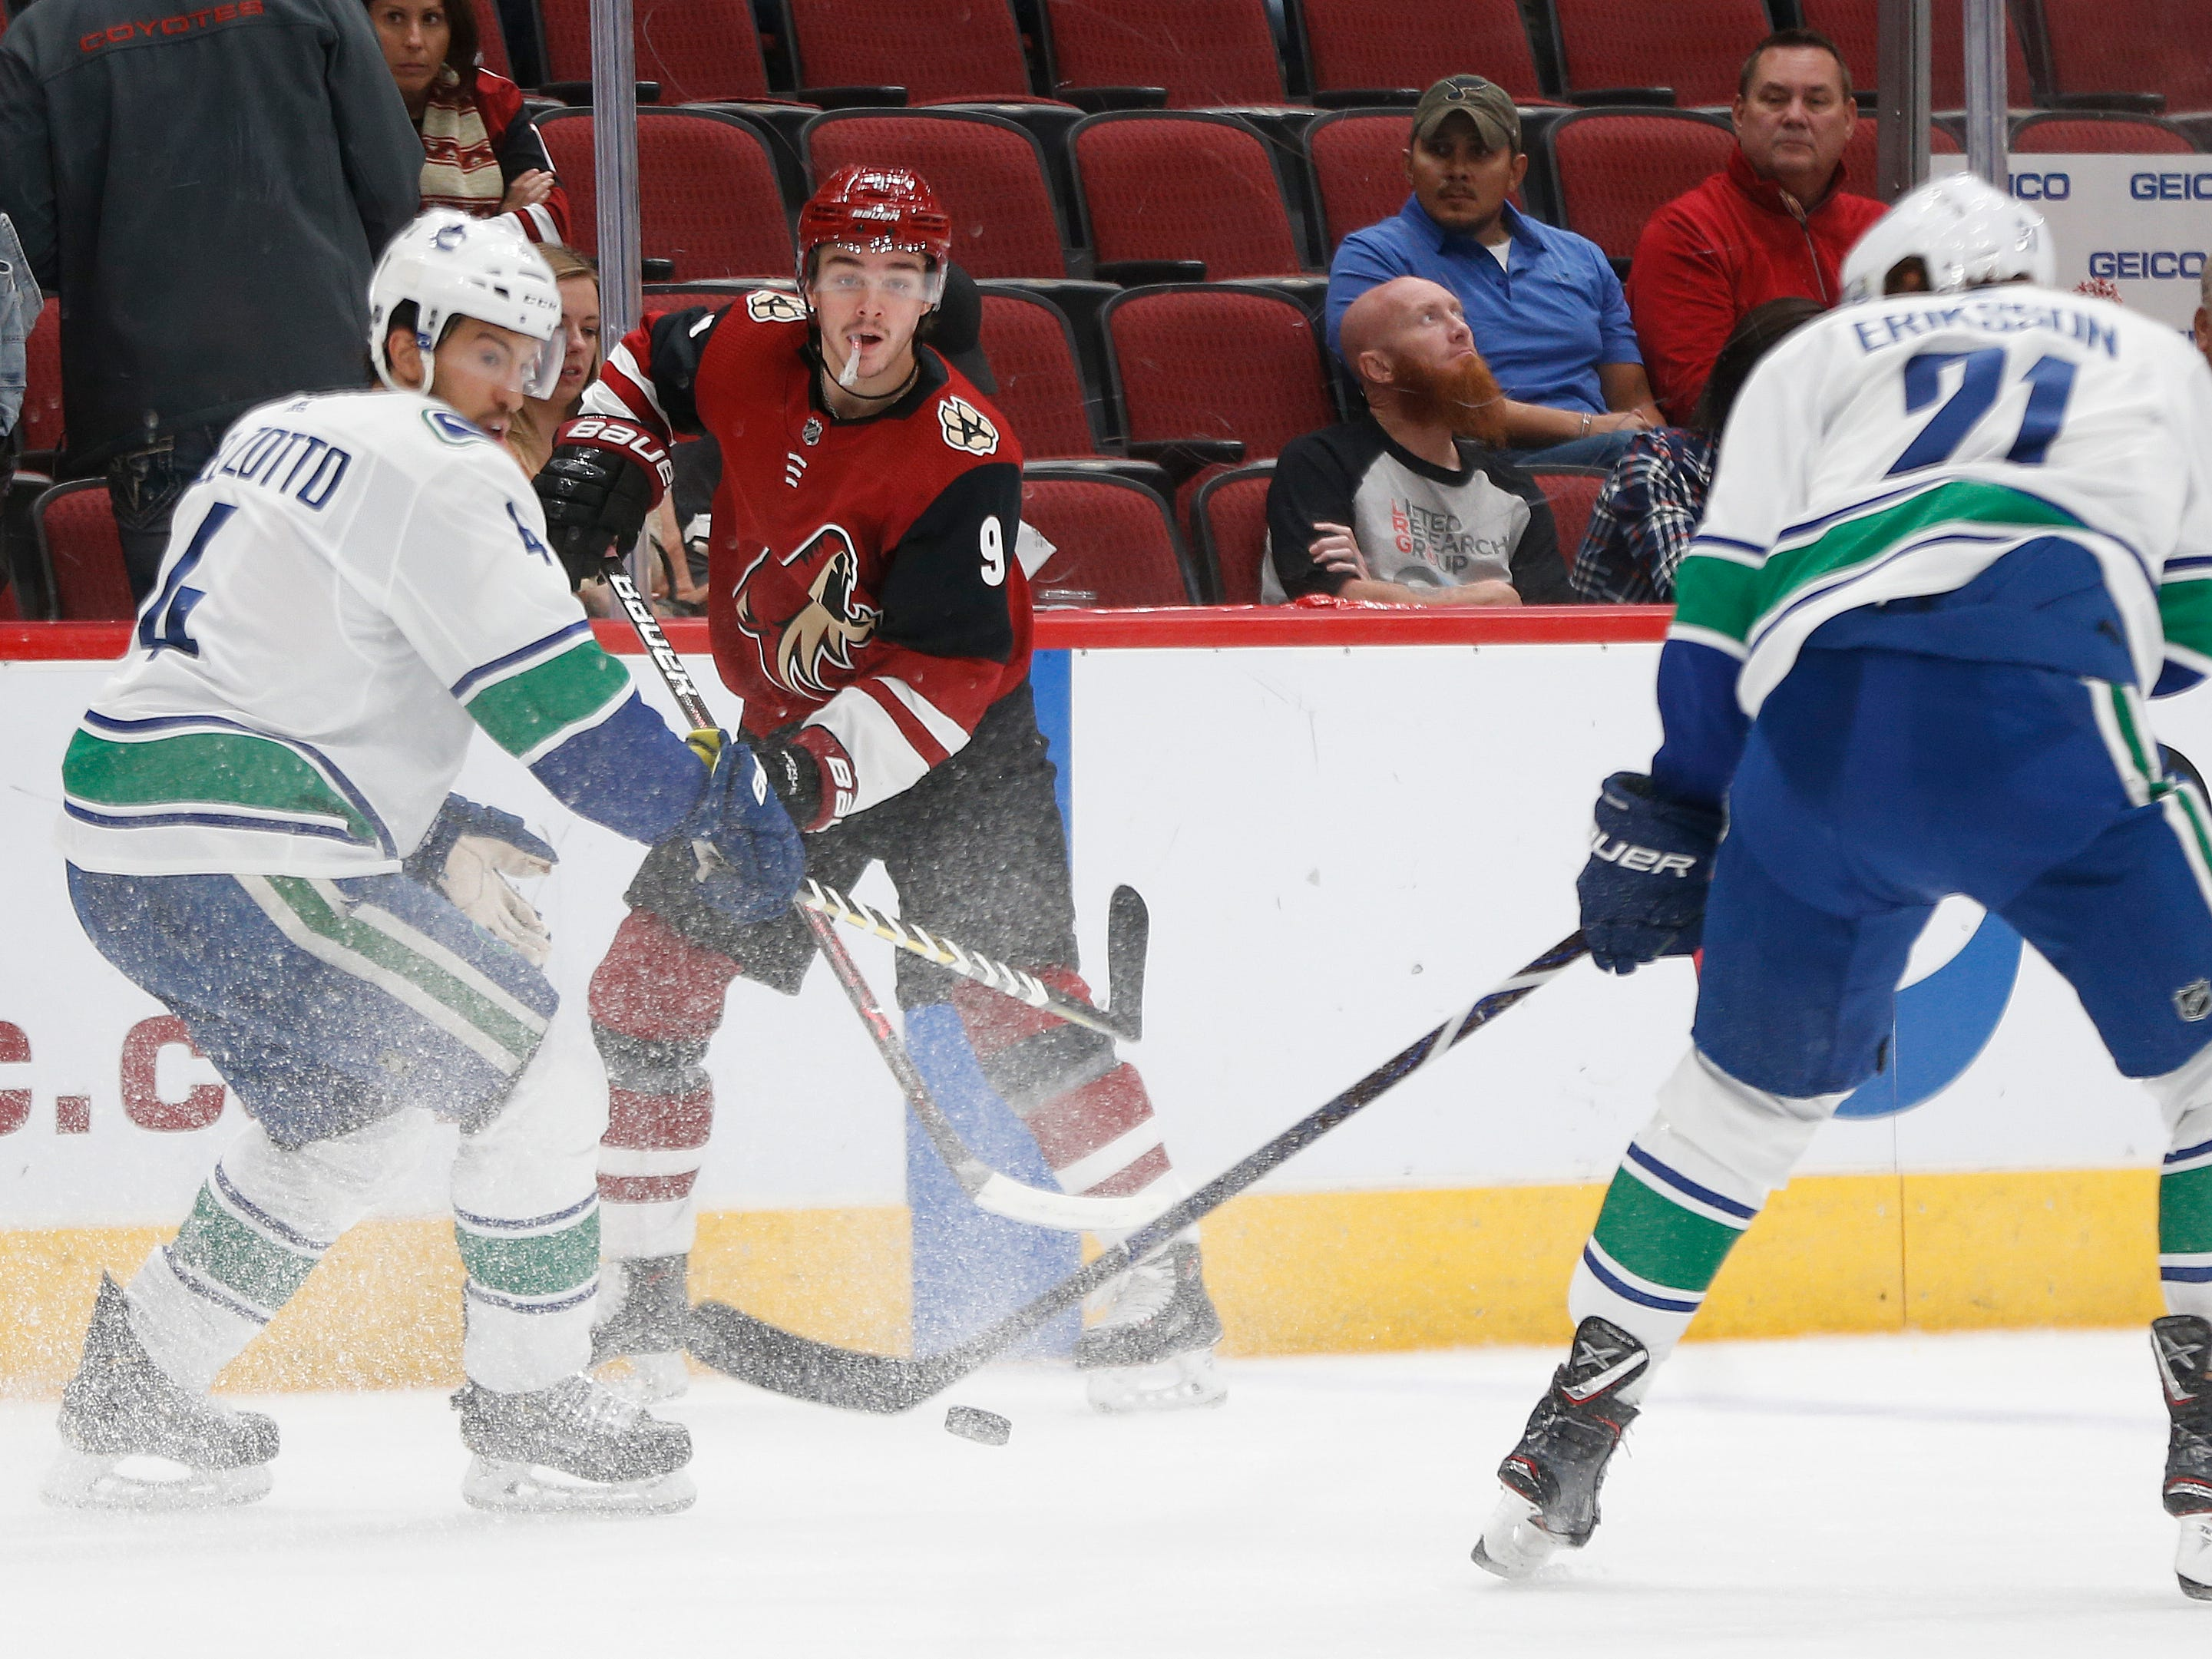 Coyotes' Clayton Keller (9) looks for teammates against Canucks' Michael Del Zotto (4) during the first period at Gila River Arena in Glendale, Ariz. on October 25, 2018.